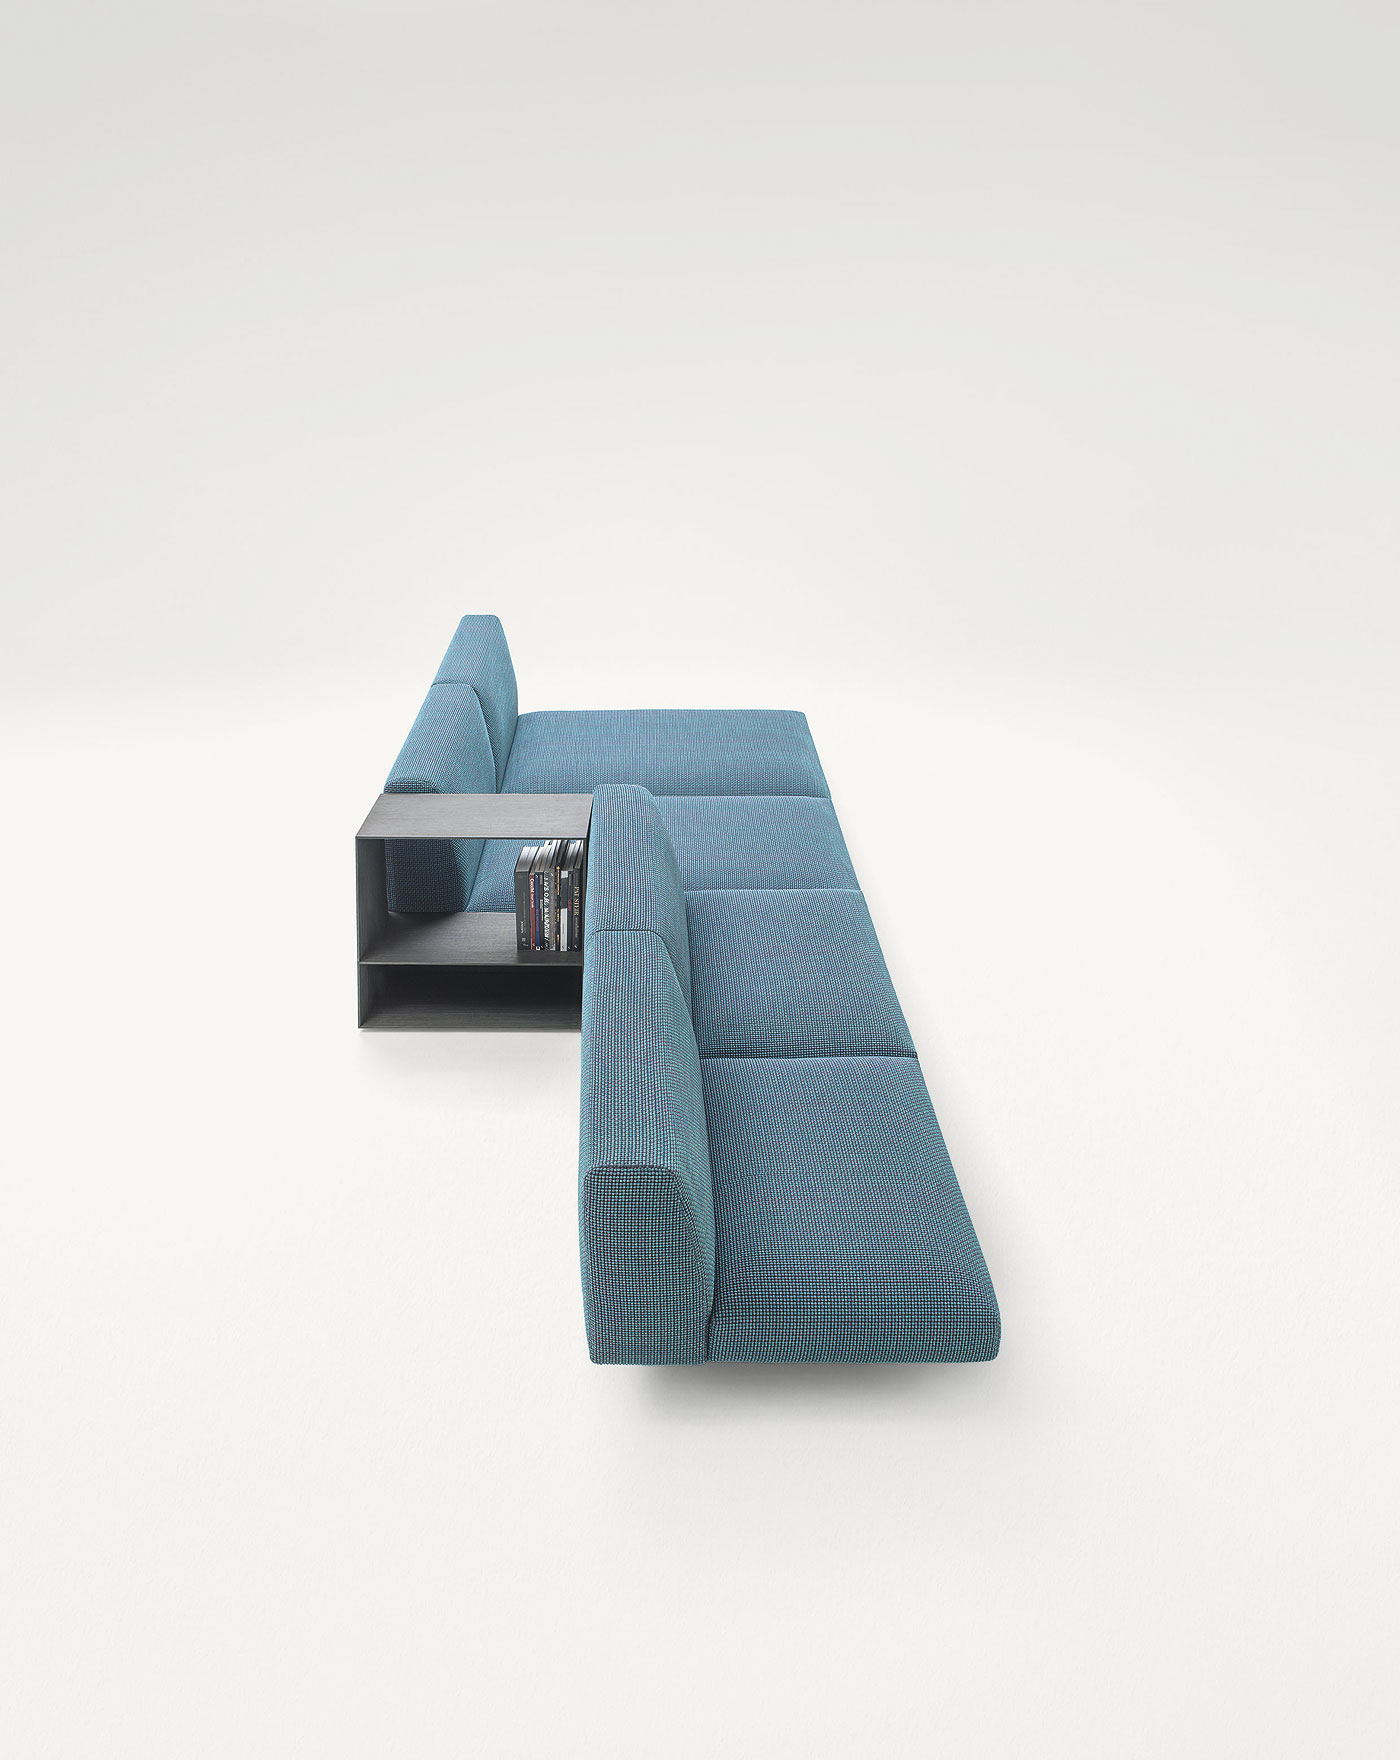 sofa-move-francesco-rota-paola-lenti (3)